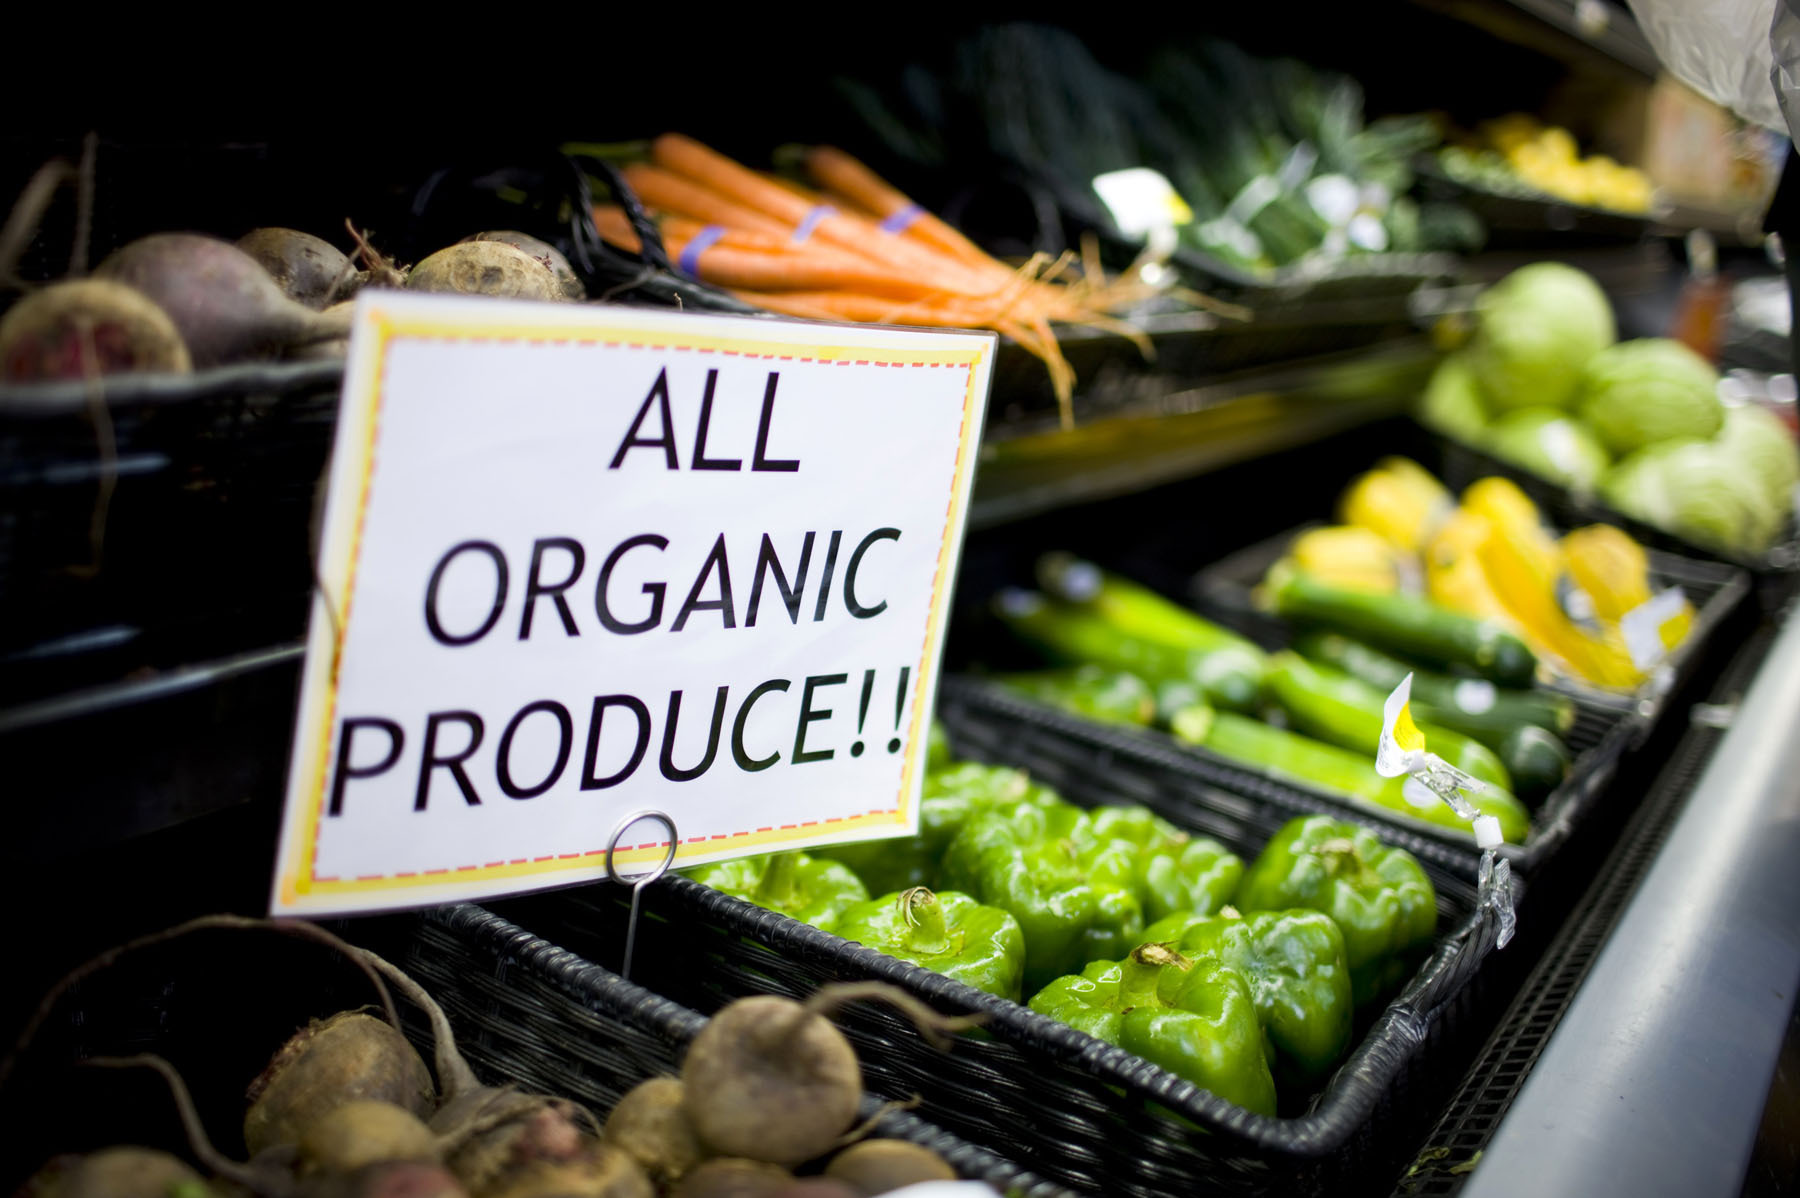 Can You Trust That Organic Label On Imported Food?